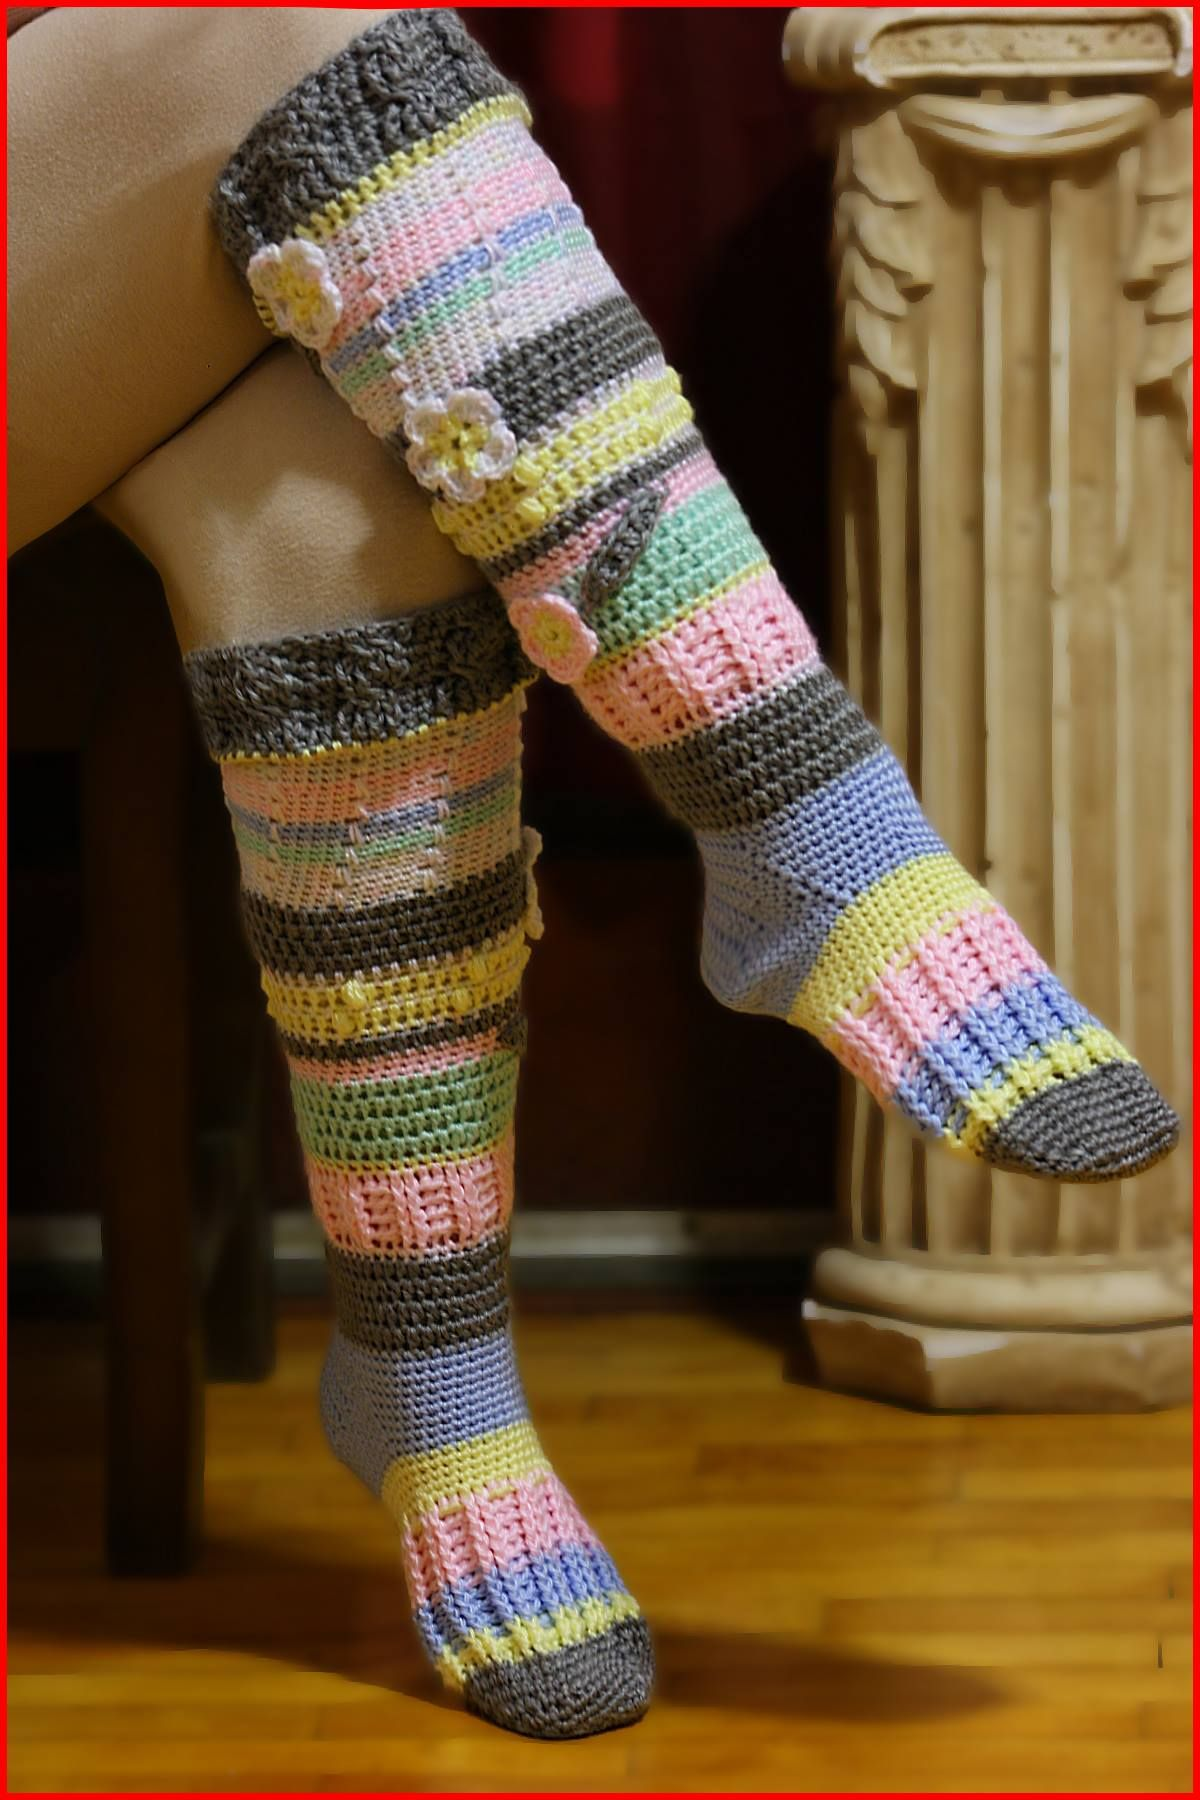 Crochet Tutorial Knee High Socks Crocheting Crochet Socks